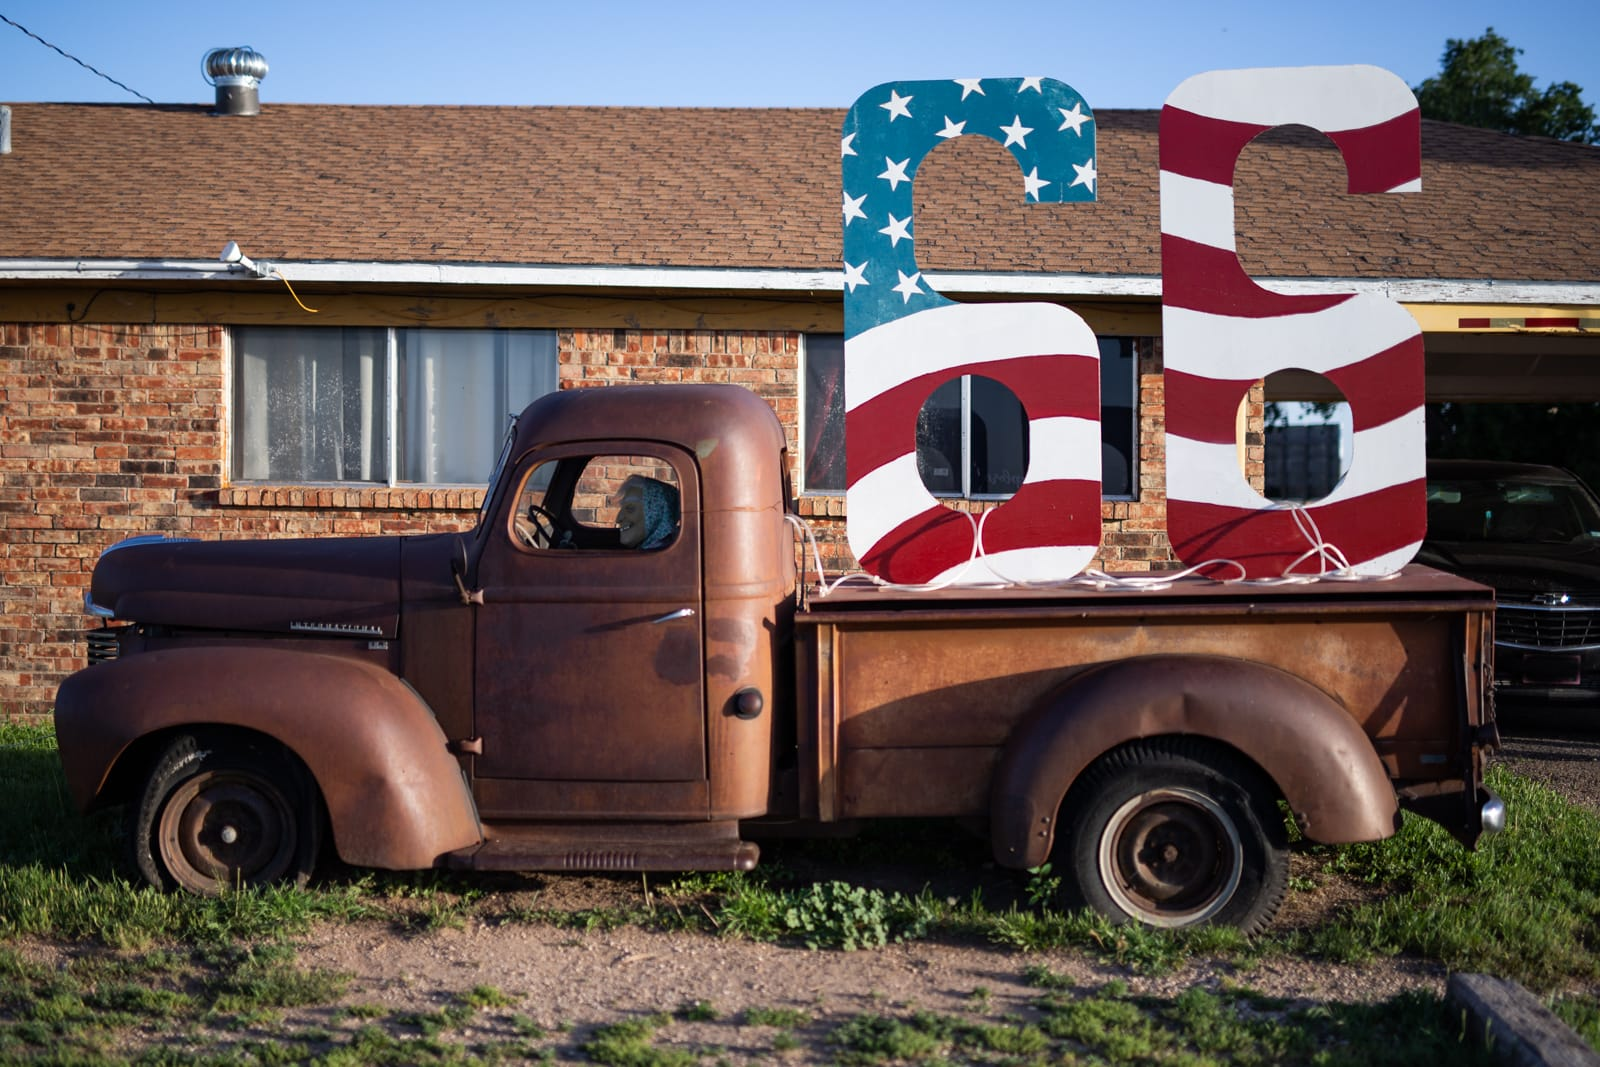 Large Route 66 numbers in a rusting vintage pickup truck